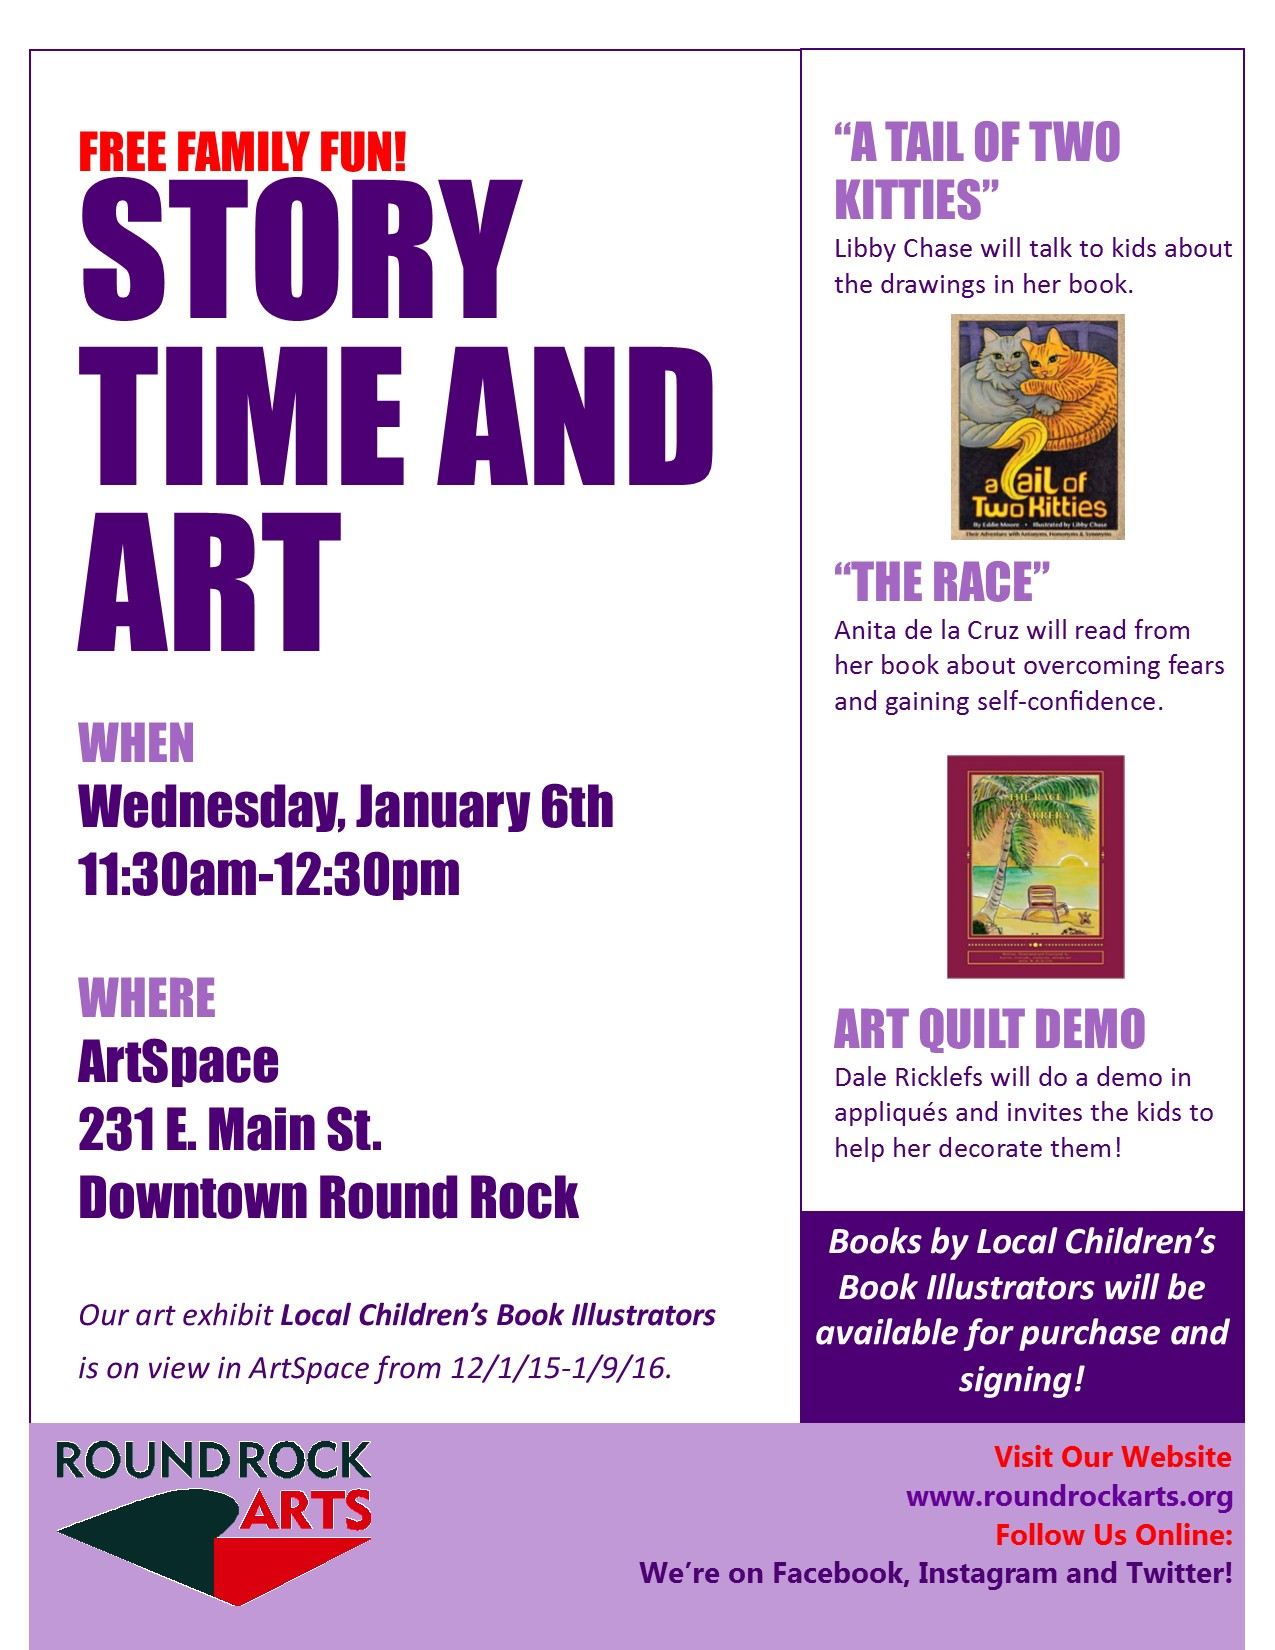 story time art at artspace round the rock